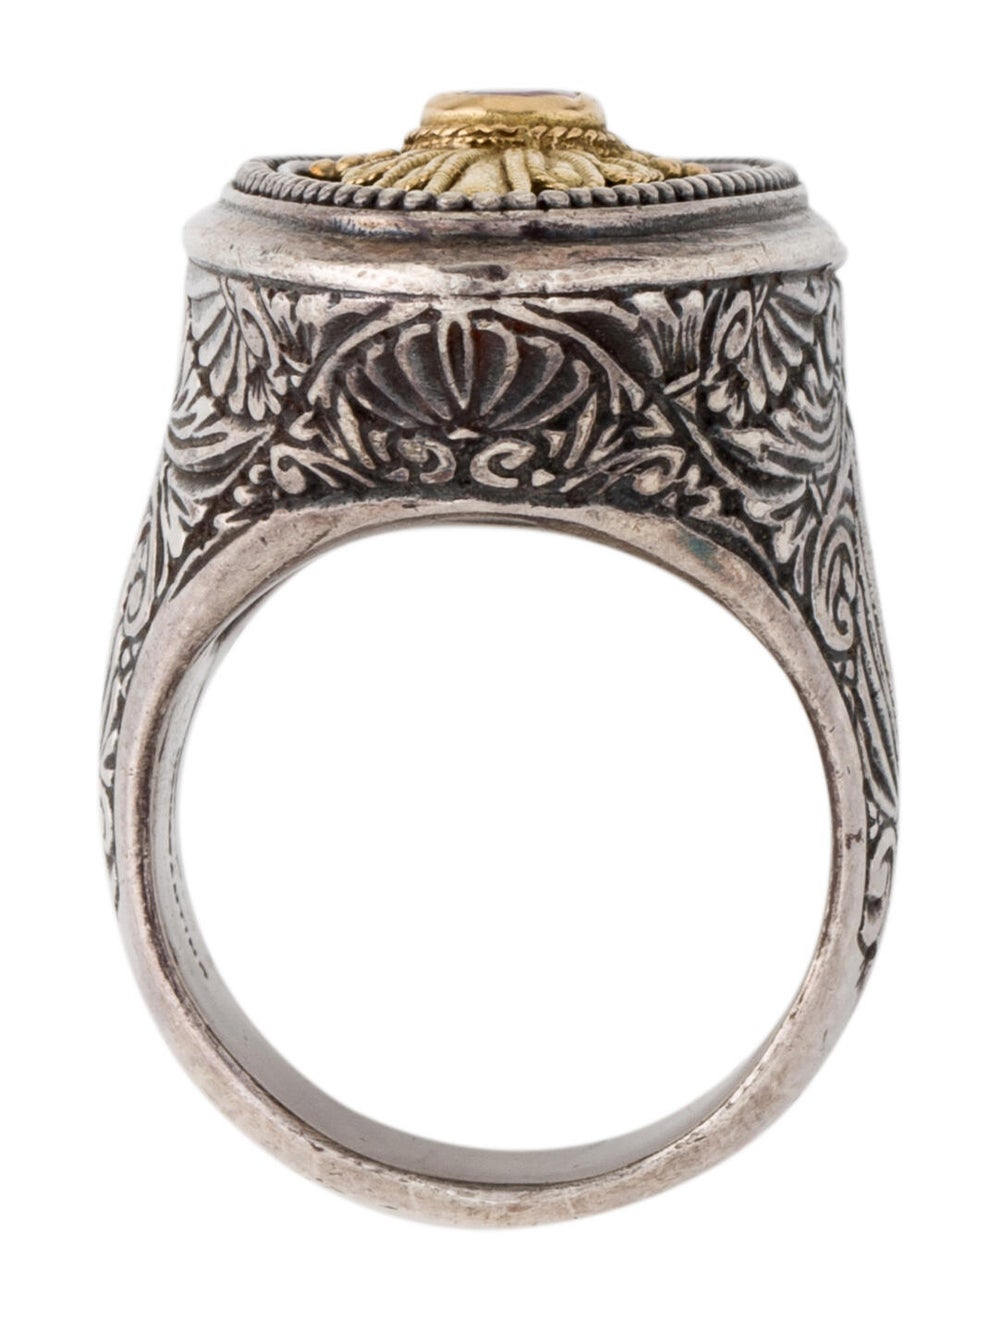 Konstantino Ruby Cocktail Ring Silver - image 5